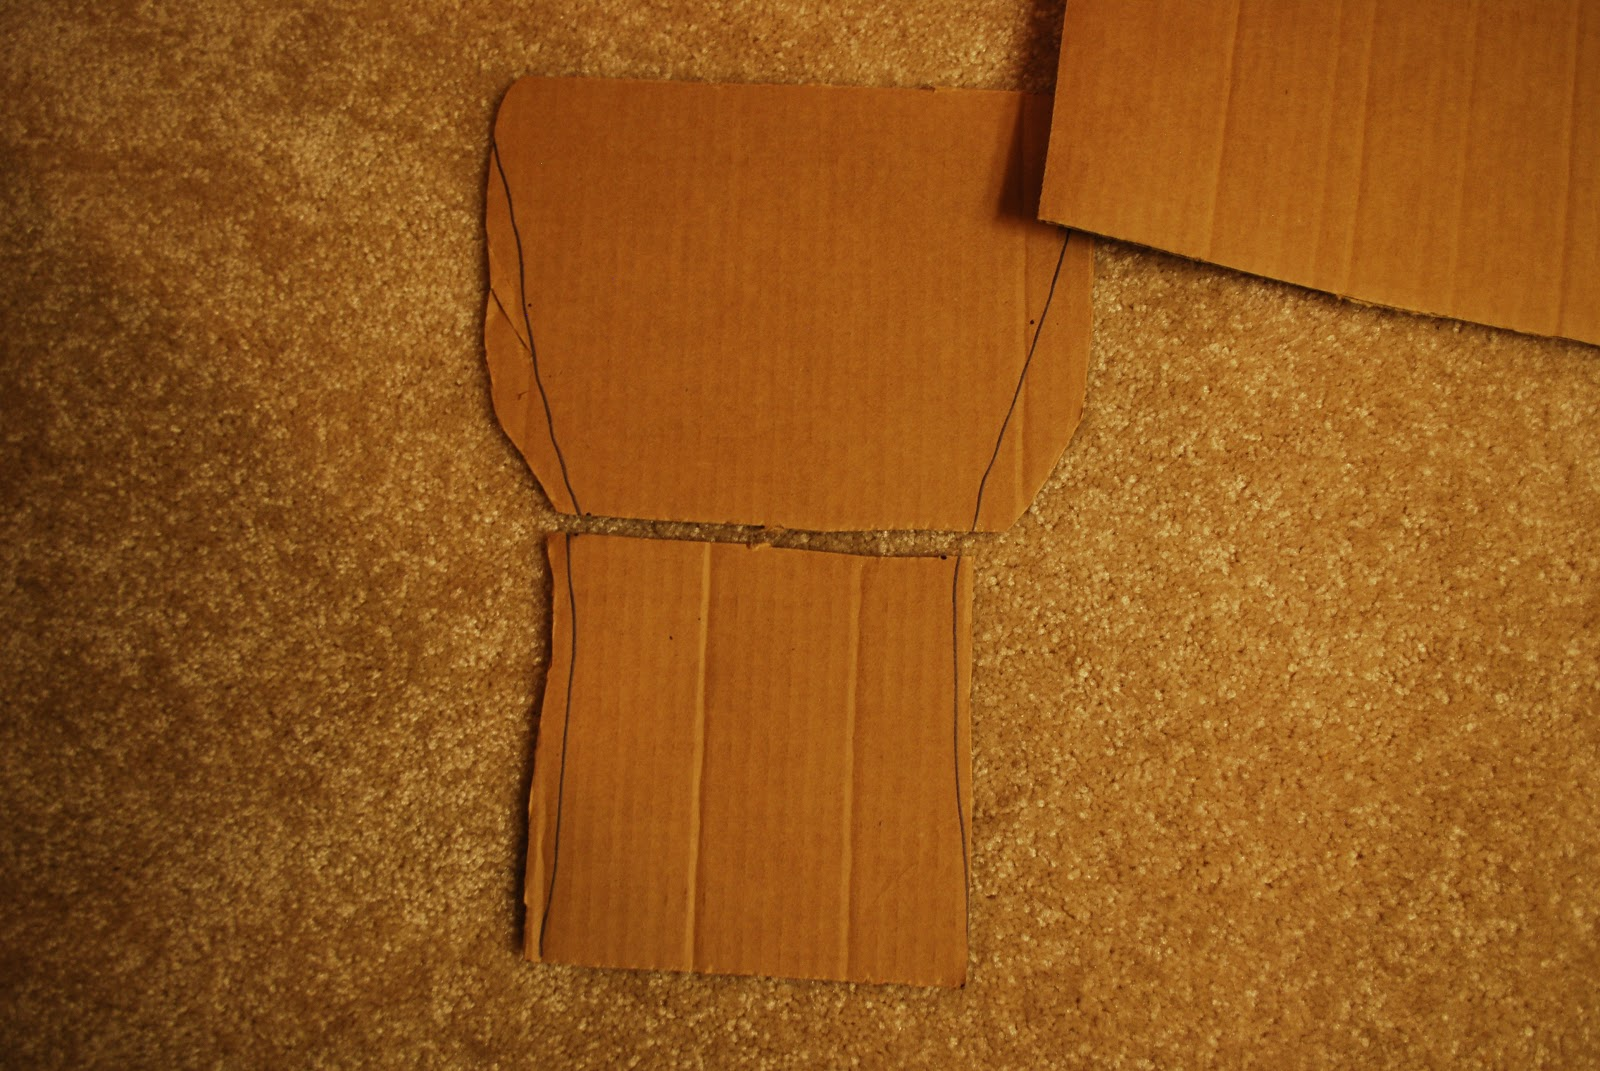 Iron Man Chest Plate Template He got this iron man chest